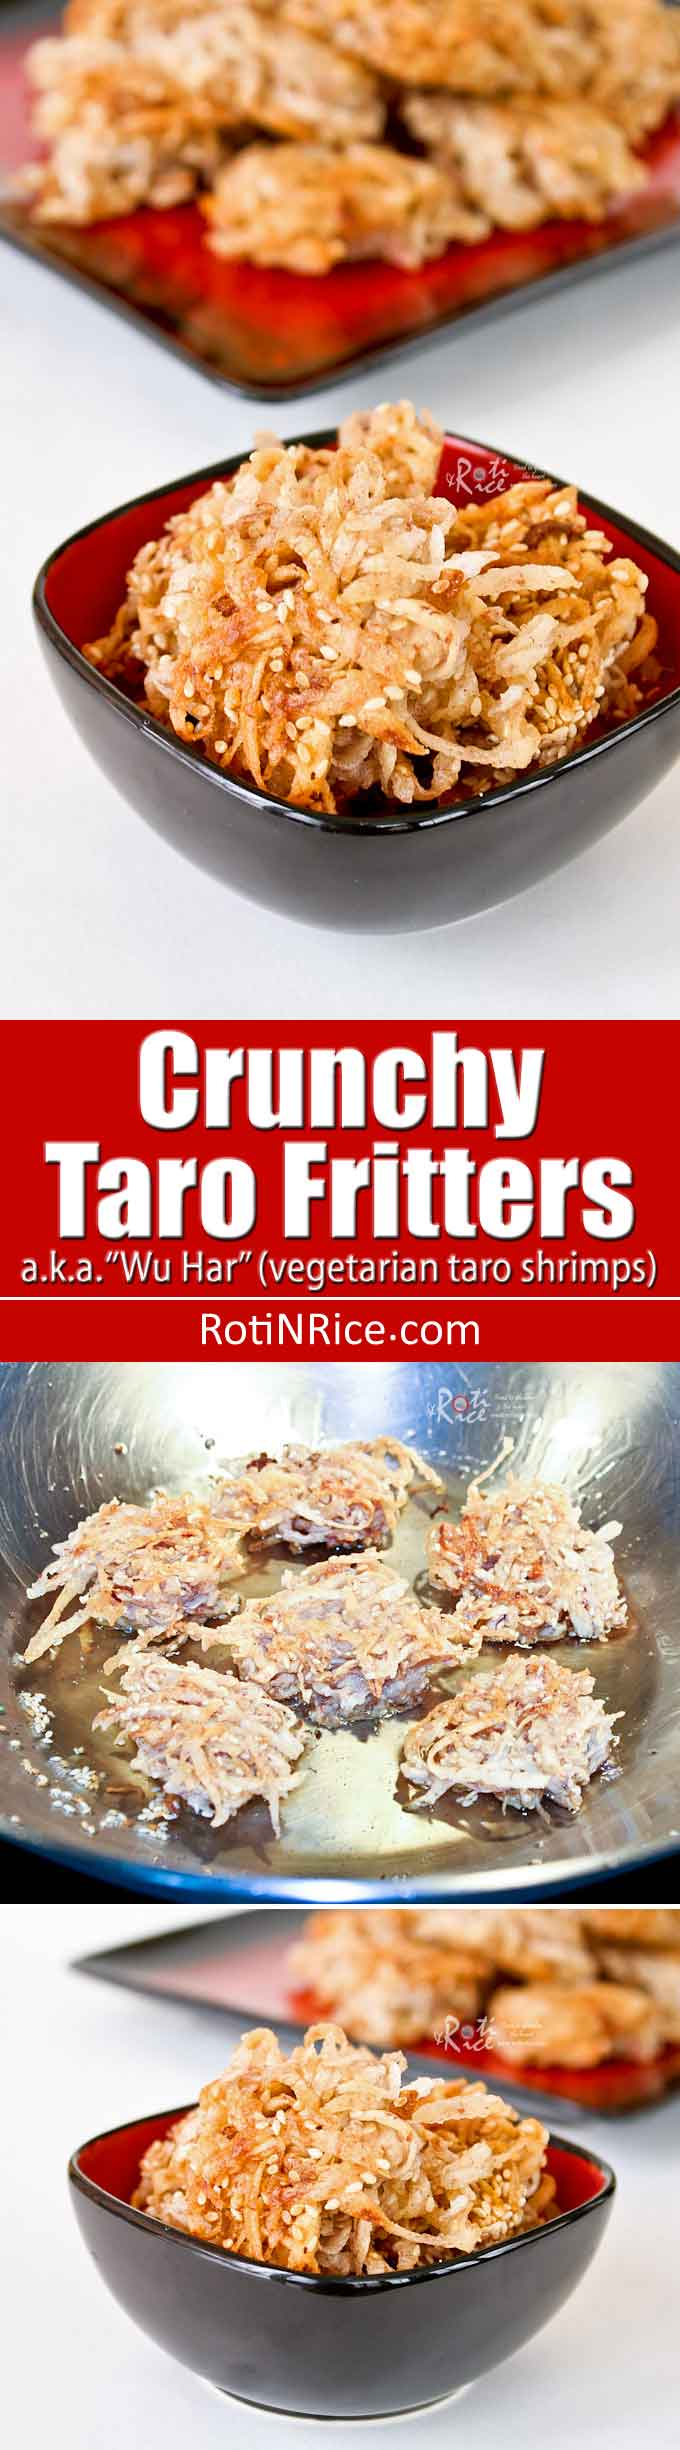 These savory Crunchy Taro Fritters flavored with five spiced powder and sesame seeds make a really tasty snack. Be sure to make a bunch for they go quickly. | RotiNRice.com